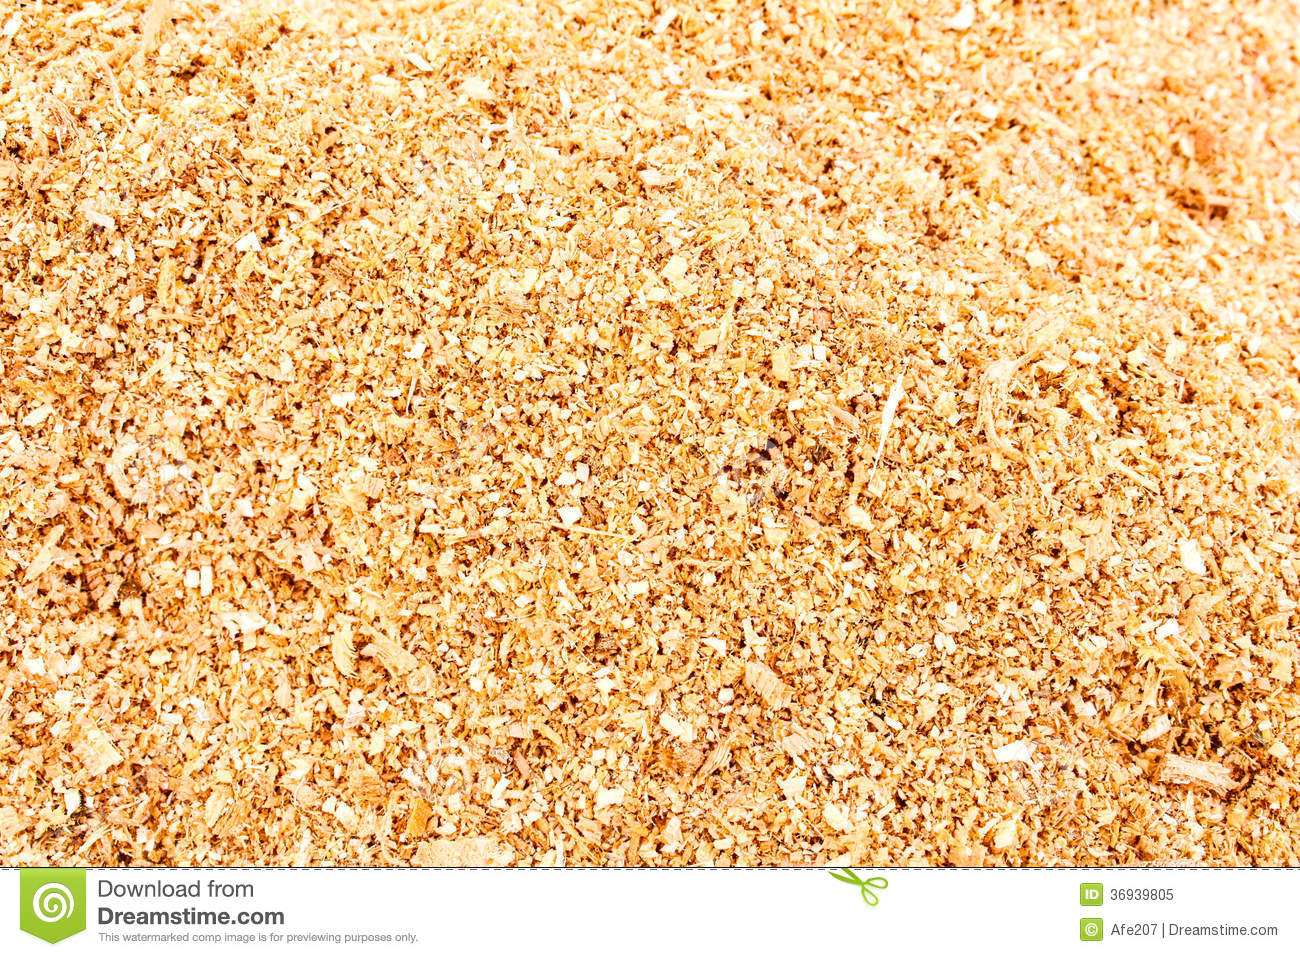 Shavings in workshop wood sawdust texture background